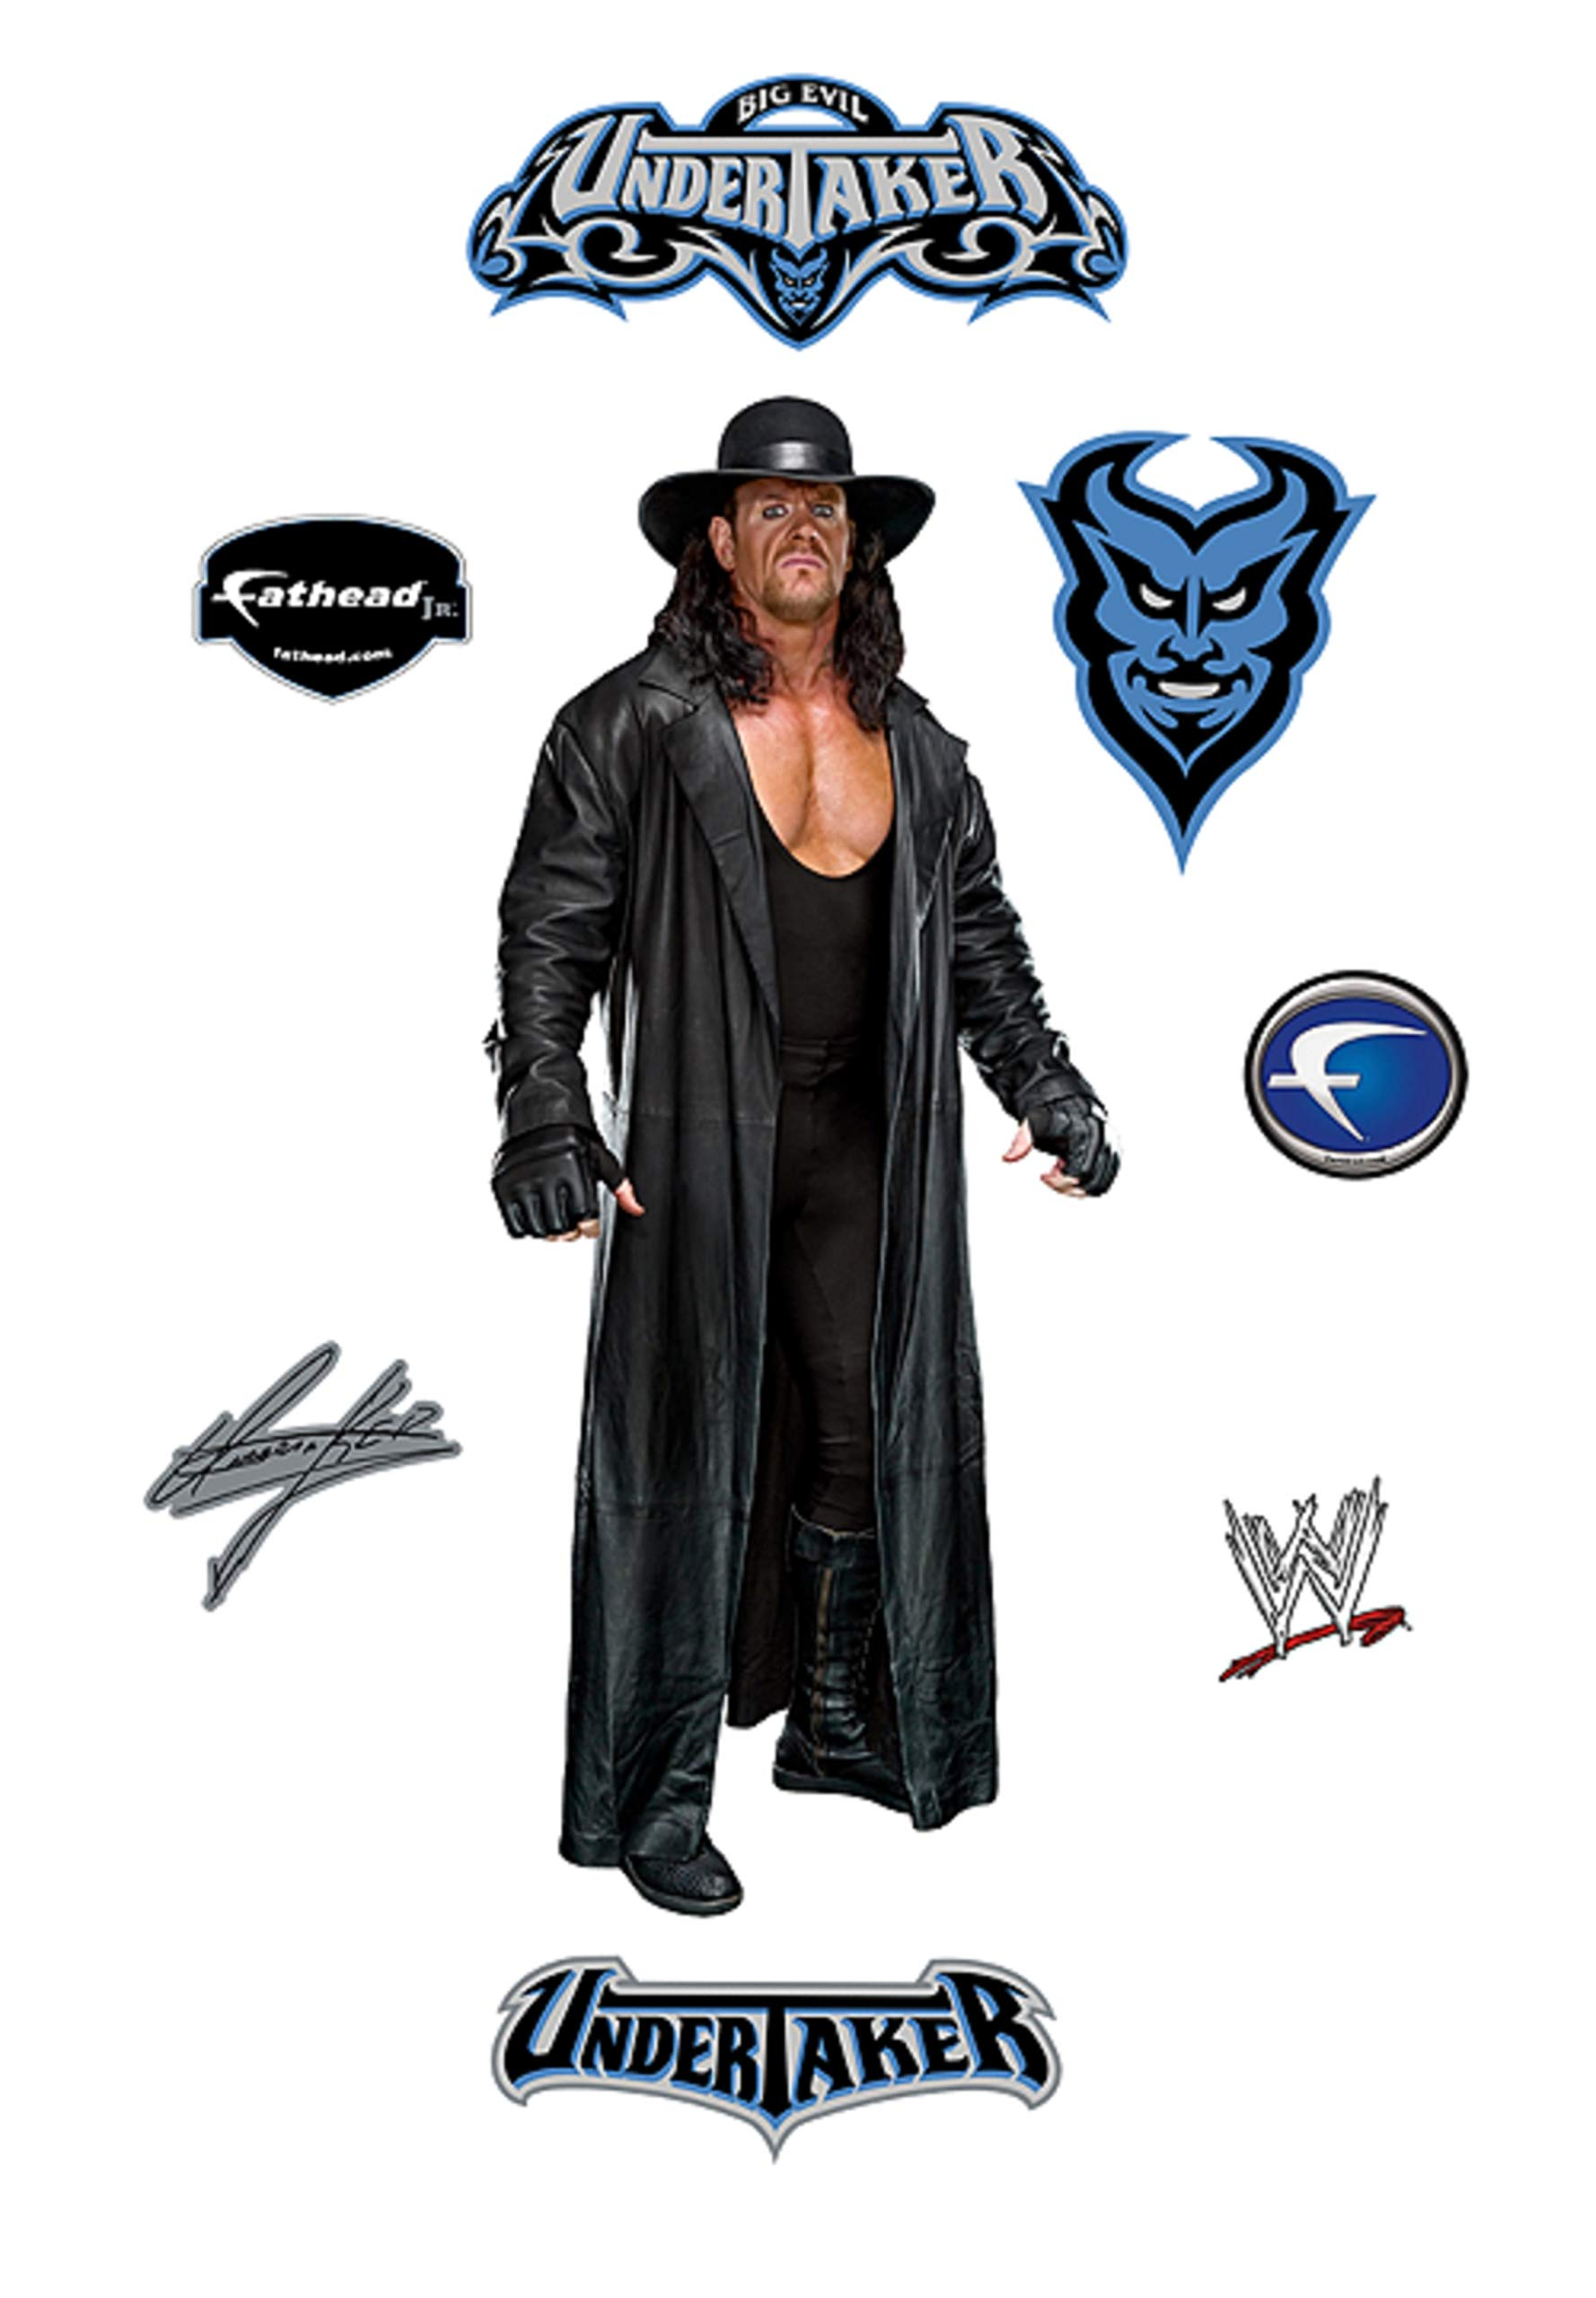 Undertaker - XL Officially Licensed WWE Removable Wall Decal by FATHEAD